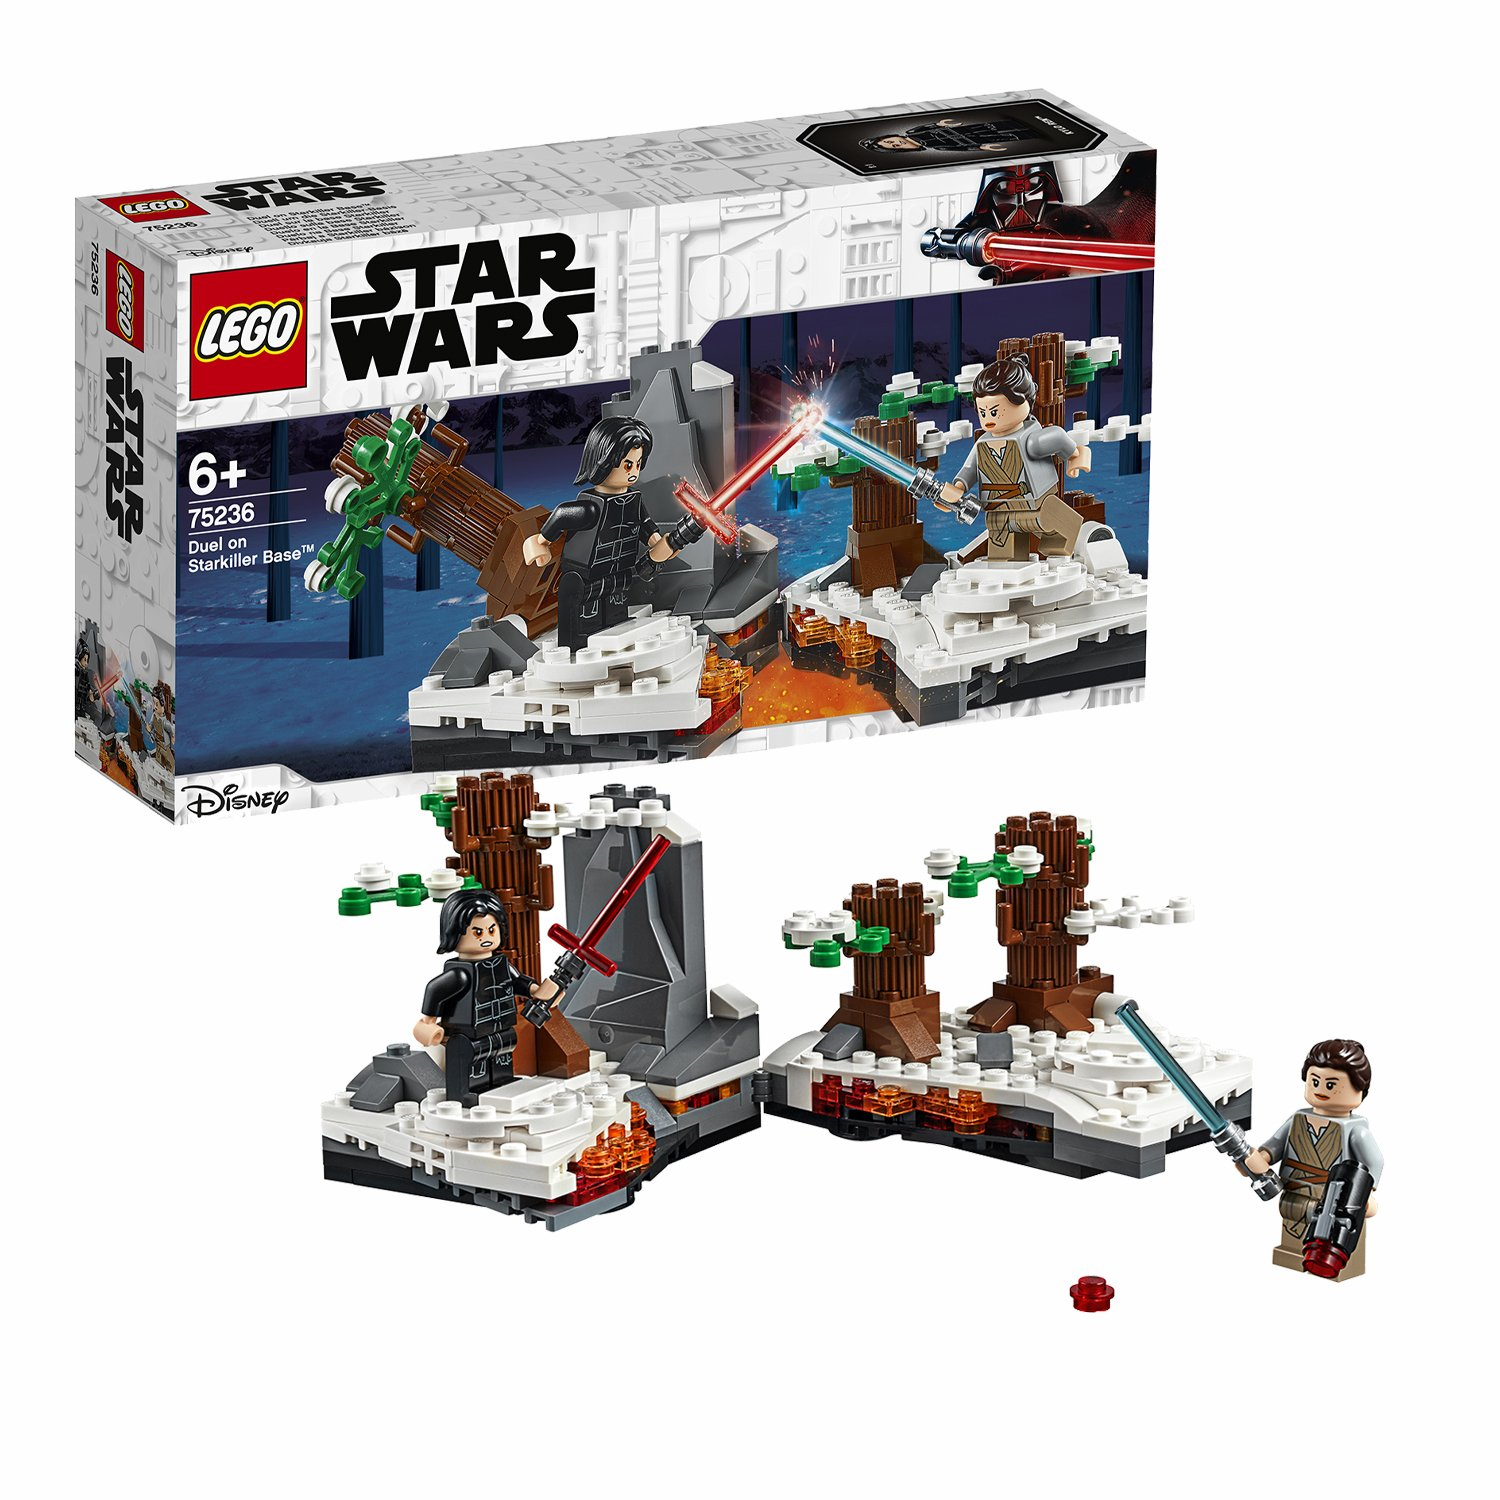 LEGO Star Wars Force Awakens Duel on Starkiller Base - 75236